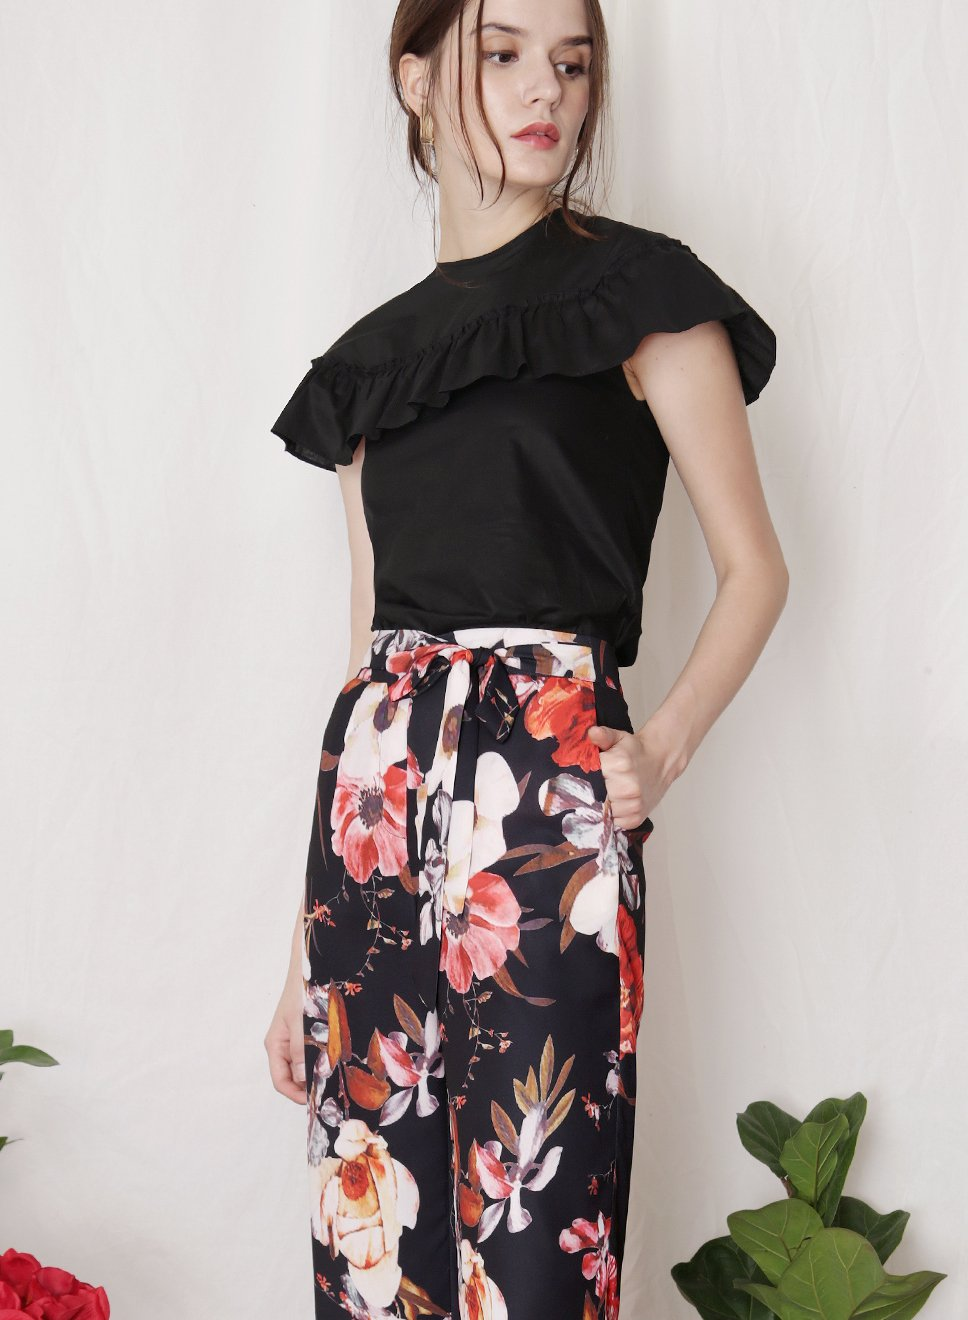 FLUTTER Ruffle Detail Top (Black) at $ 20.10 only sold at And Well Dressed Online Fashion Store Singapore